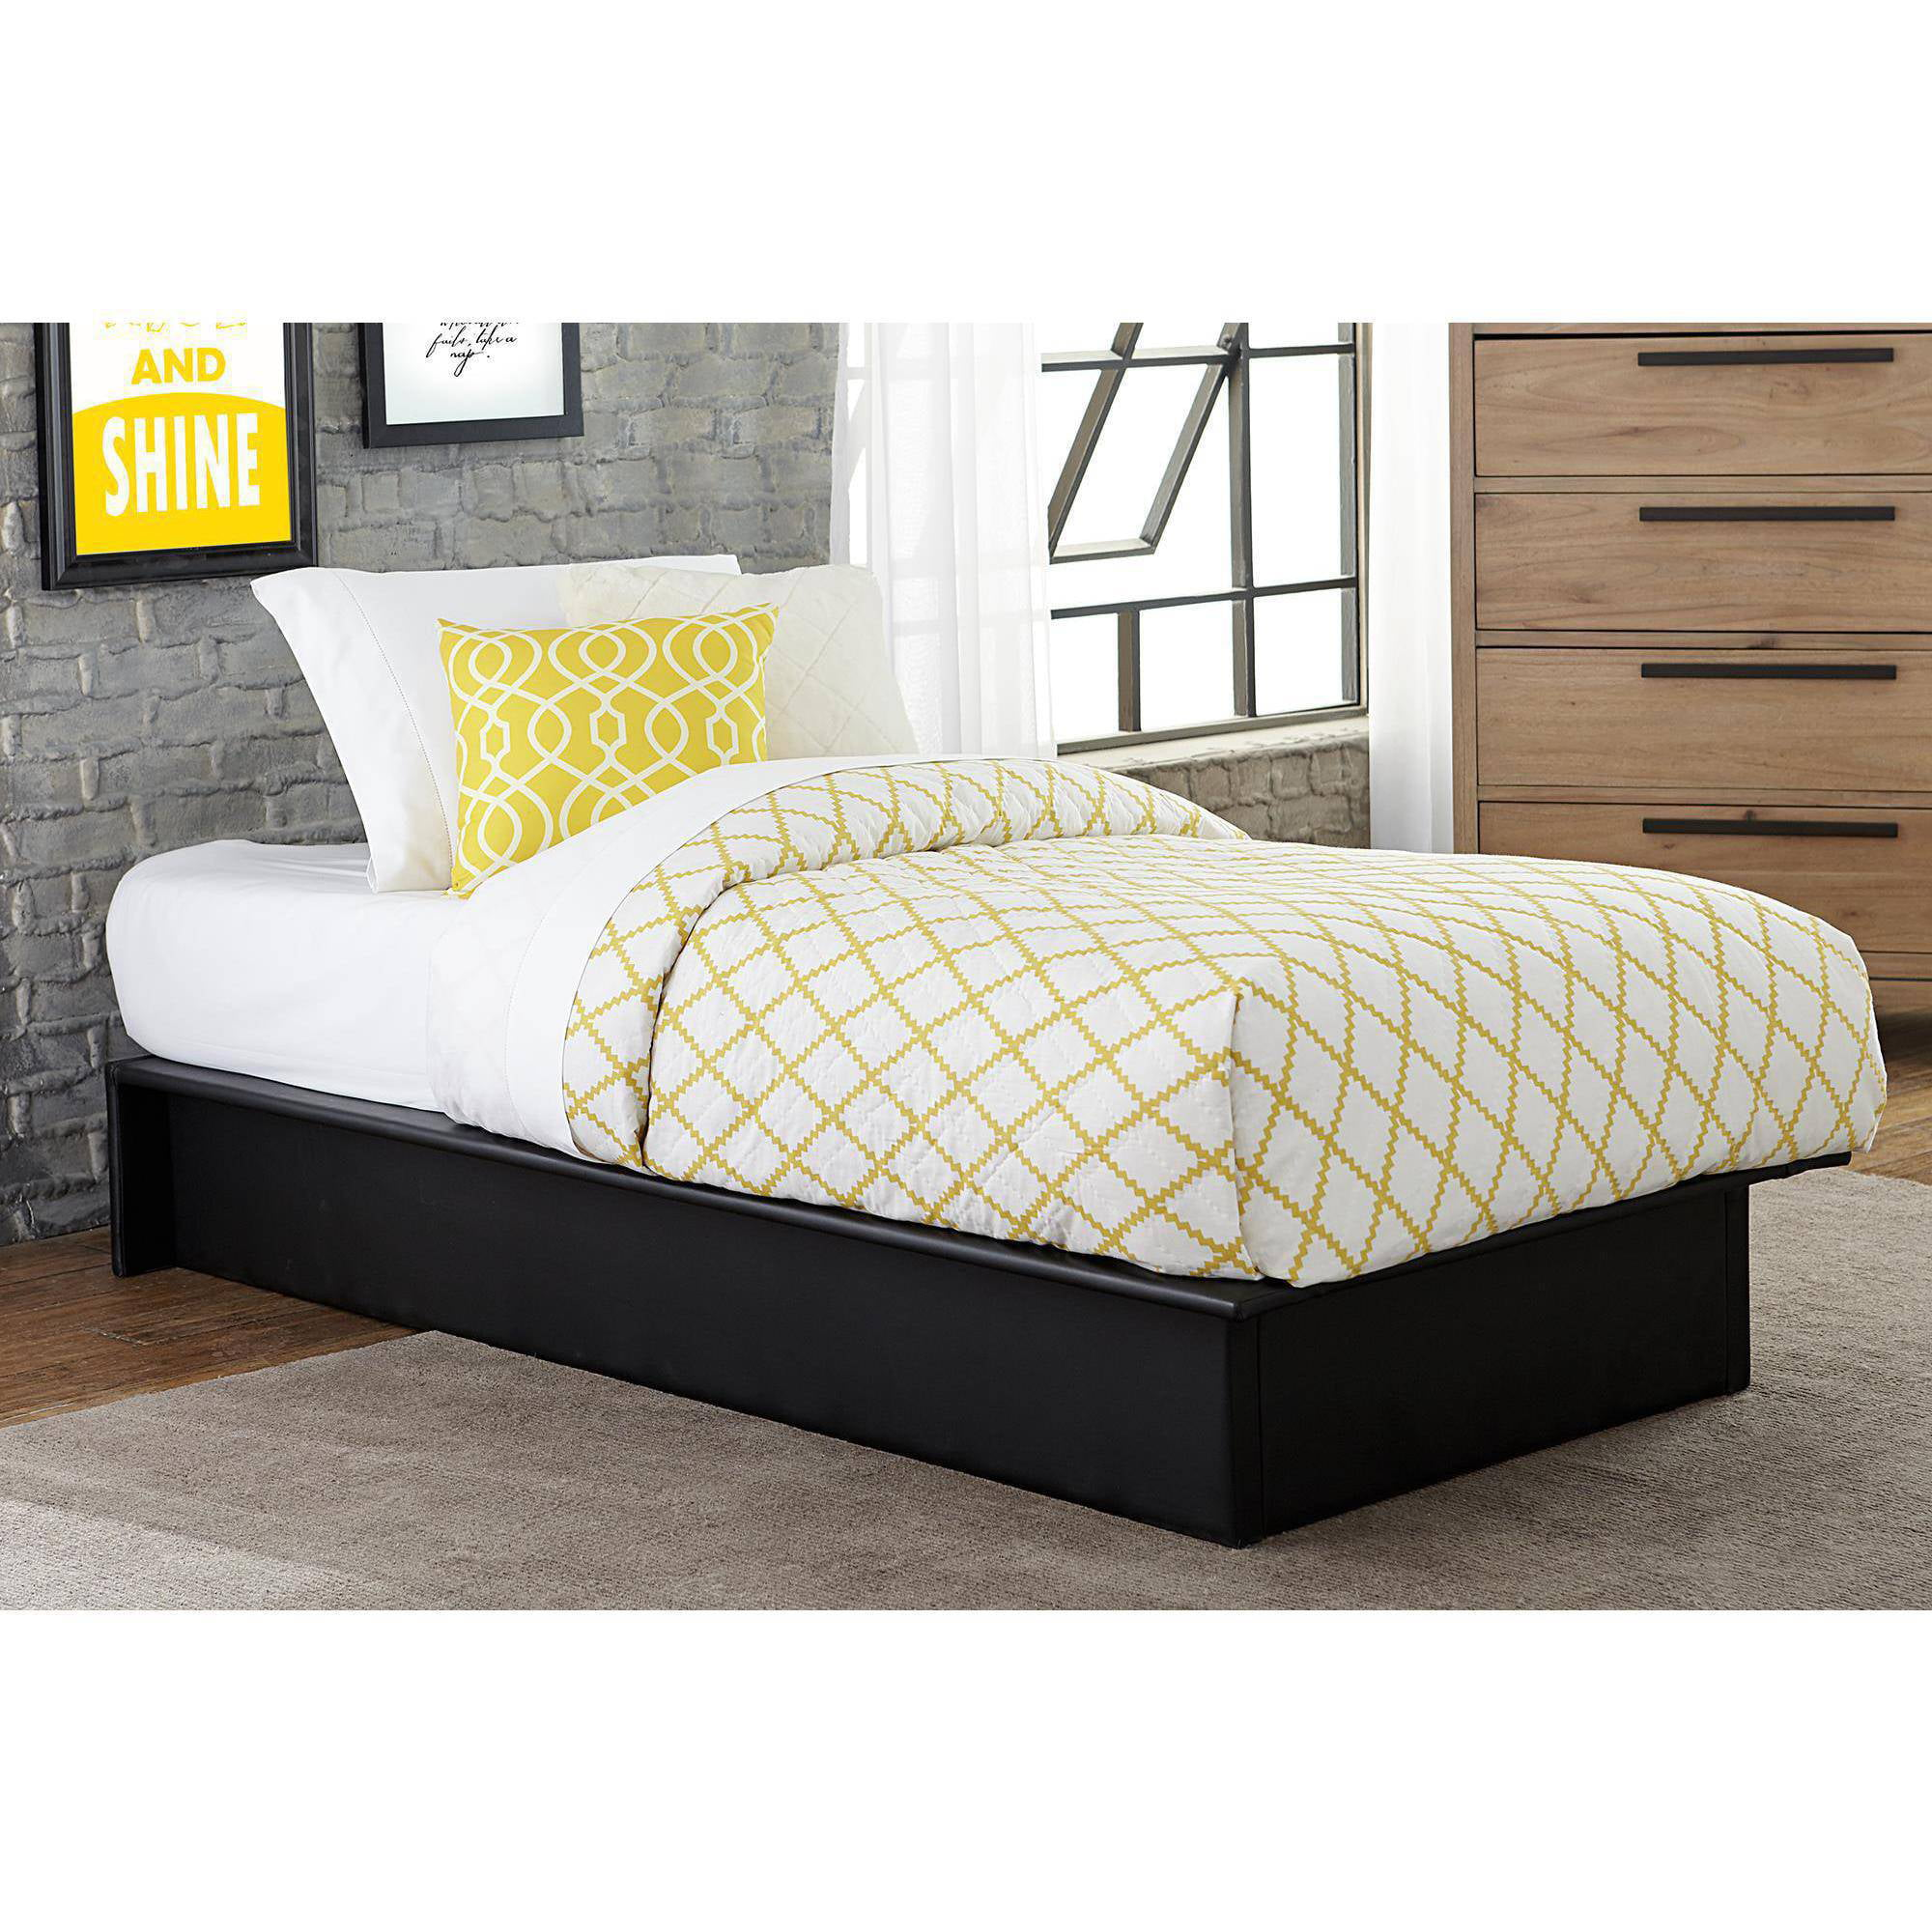 premier zurich faux leather queen white upholstered platform bed  - premier zurich faux leather queen white upholstered platform bed frame withbonus base wooden slat system  walmartcom